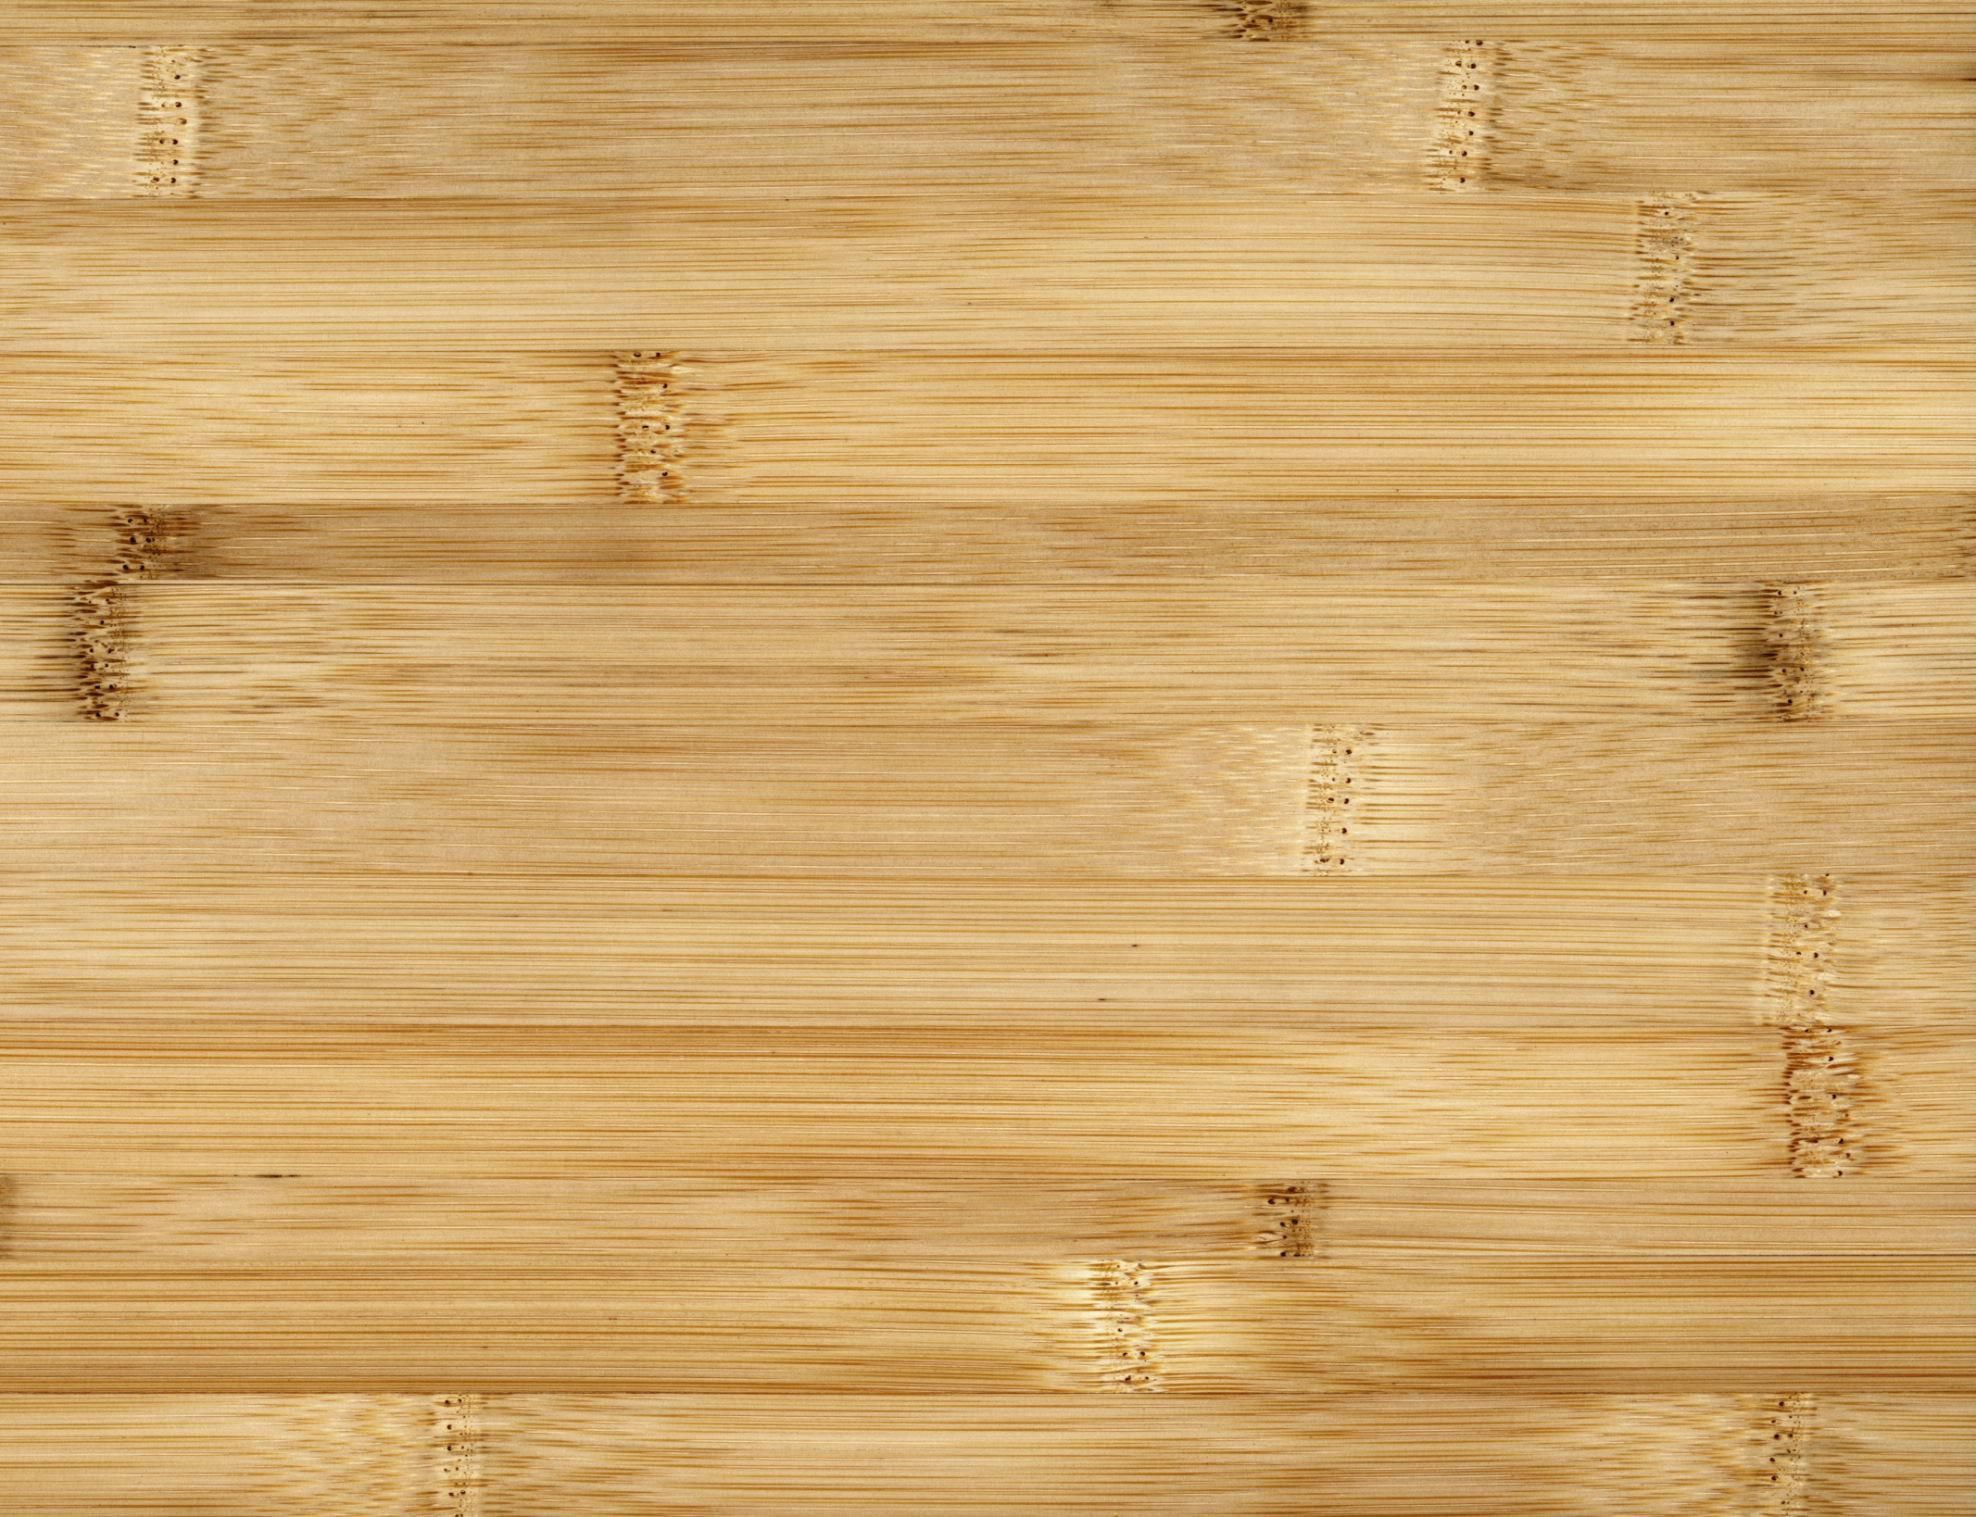 how good is bamboo hardwood flooring of how to clean bamboo flooring intended for 200266305 001 56a2fd815f9b58b7d0d000cd